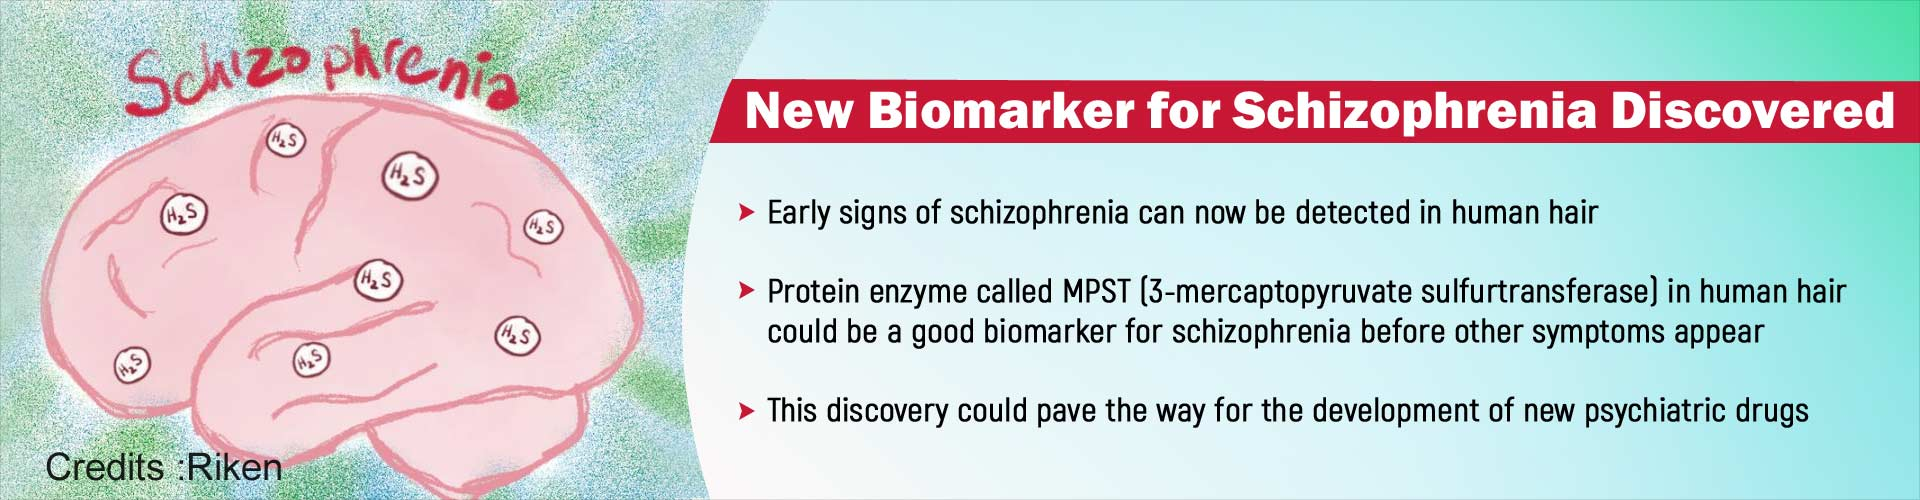 New Biomarker for Schizophrenia Discovered. Early signs of schizophrenia can now be detected in human hair. Protein enzyme called MPST (3-mercaptopyruvate sulfurtransferase) in human hair could be a good biomarker for schizophrenia before other symptoms appear. This discovery could pave the way for the development of new psychiatric drugs.